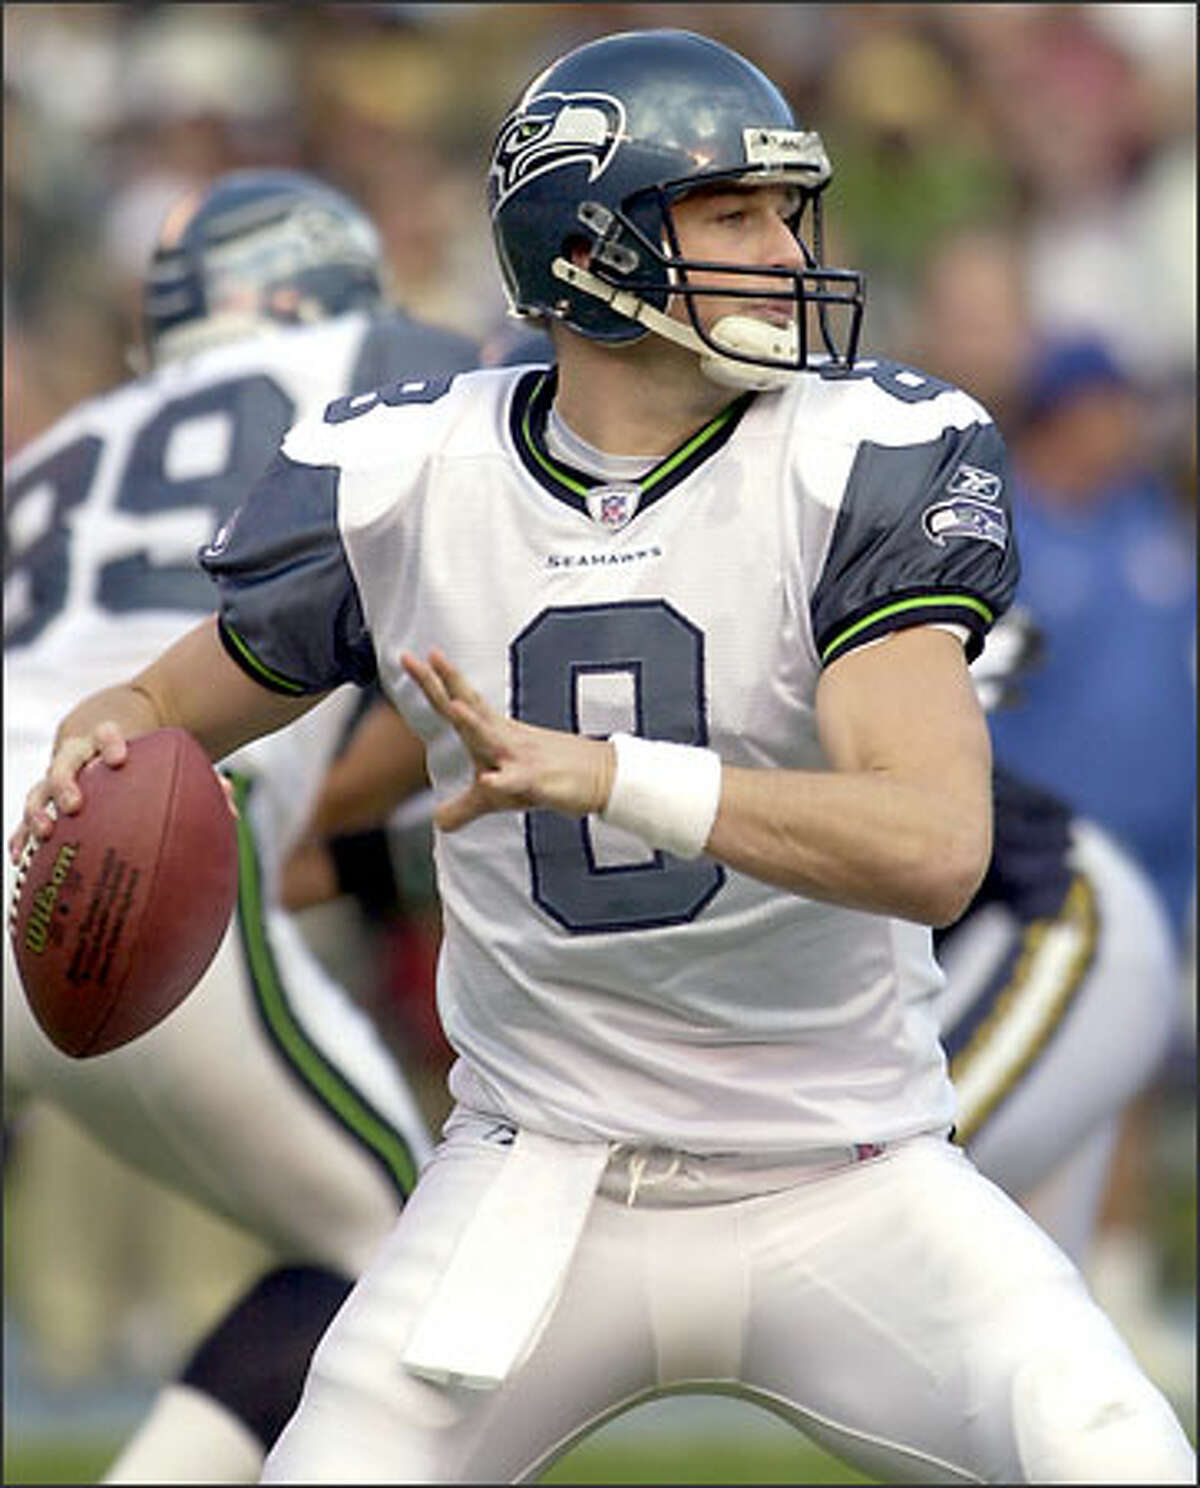 Matt Hasselbeck threw two touchdown passes, lead the Seahawks to a 31-28 comeback victory in overtime.